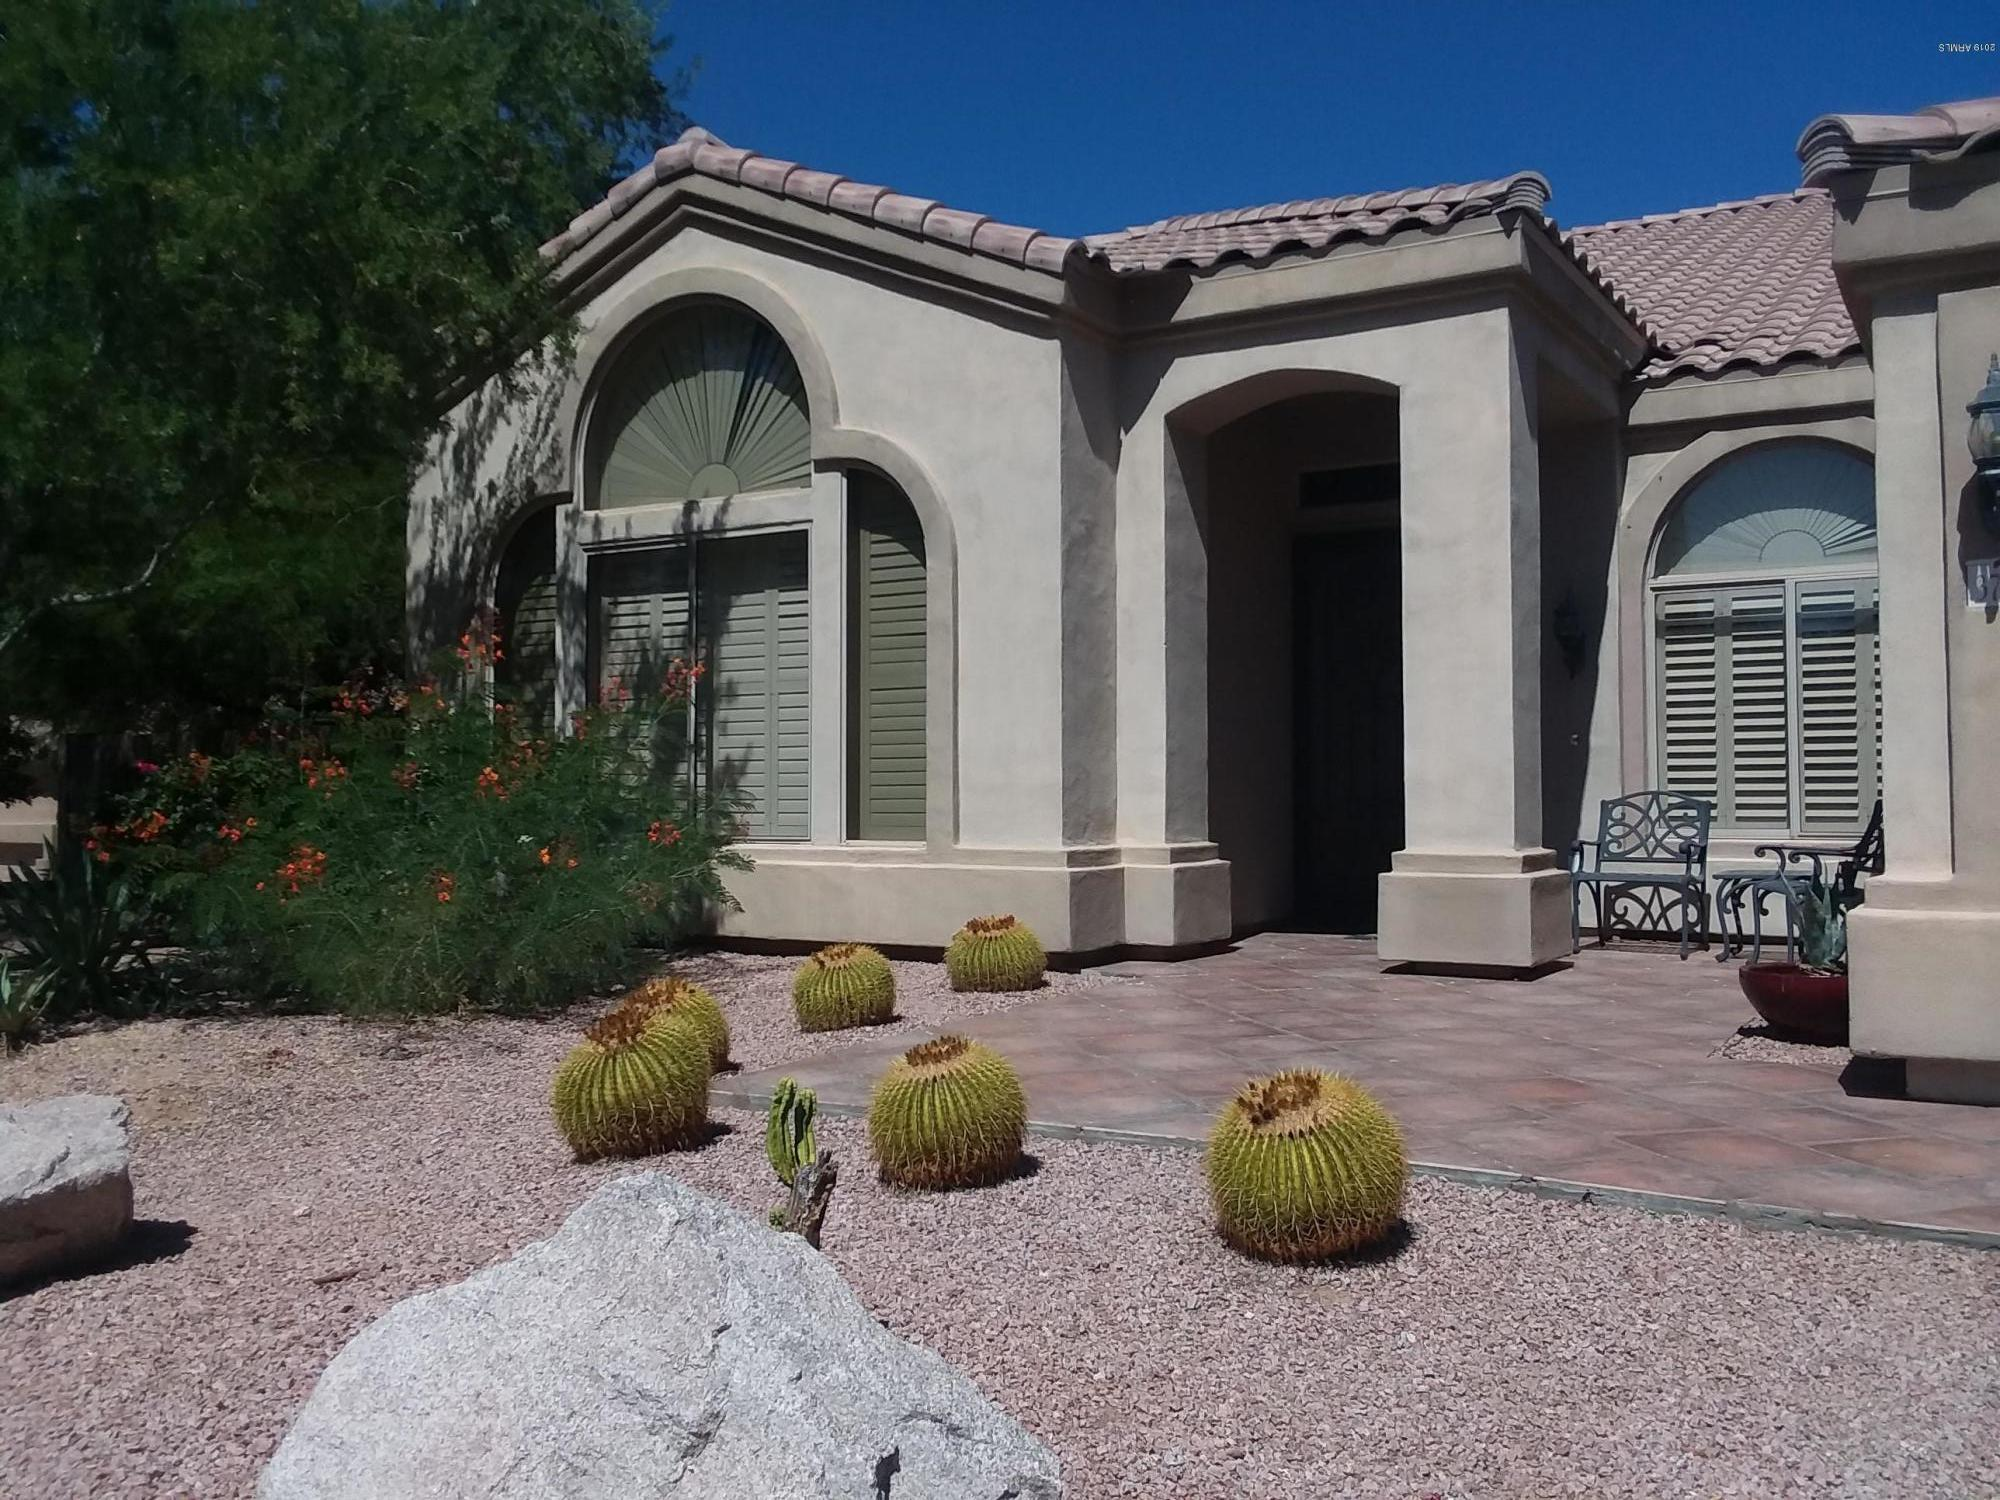 Photo of 3764 N CANYON WASH --, Mesa, AZ 85207